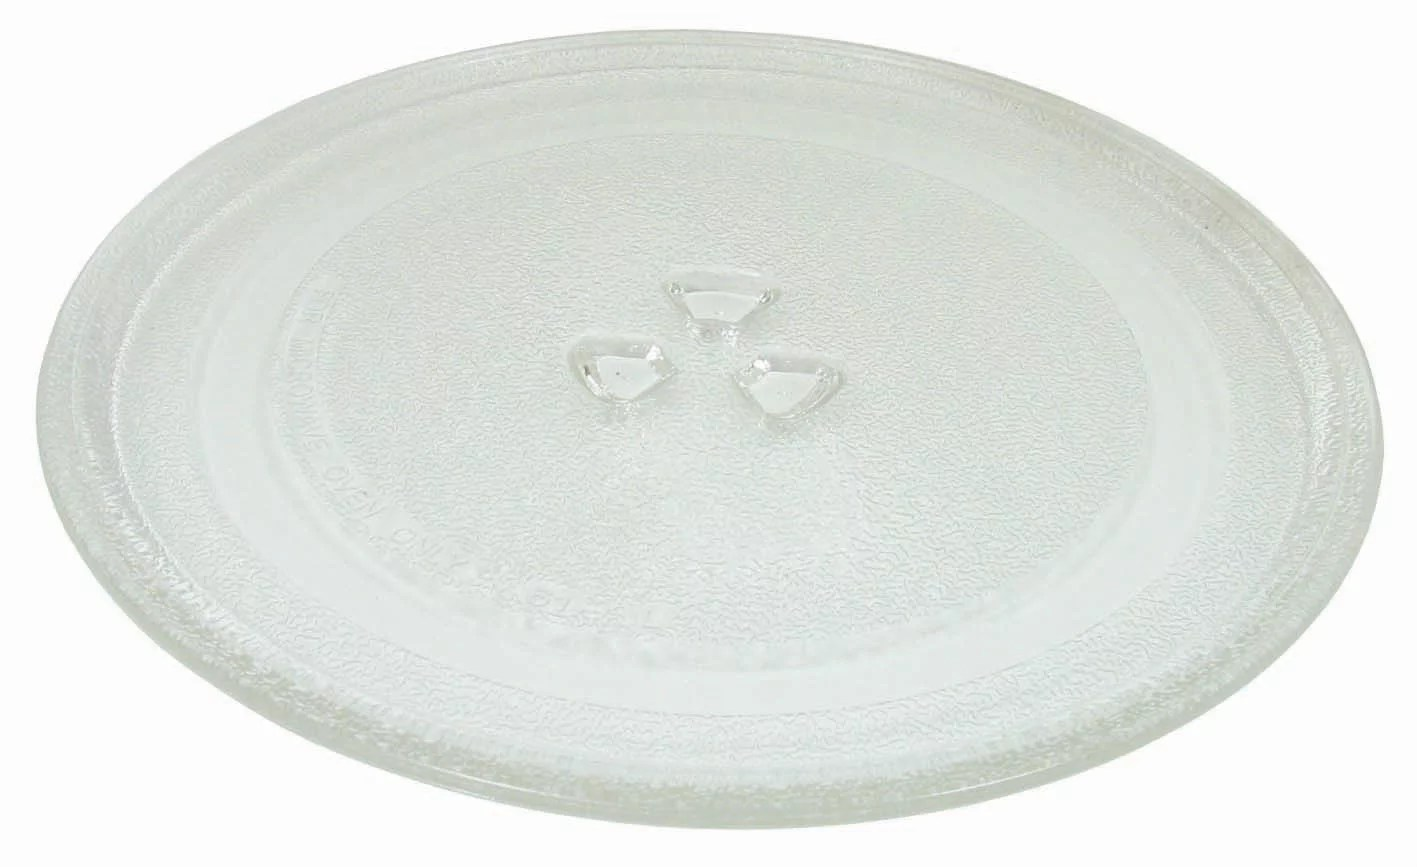 4yourhome microwave glass turntable plate 9 5 or 245mm designed to fit several models